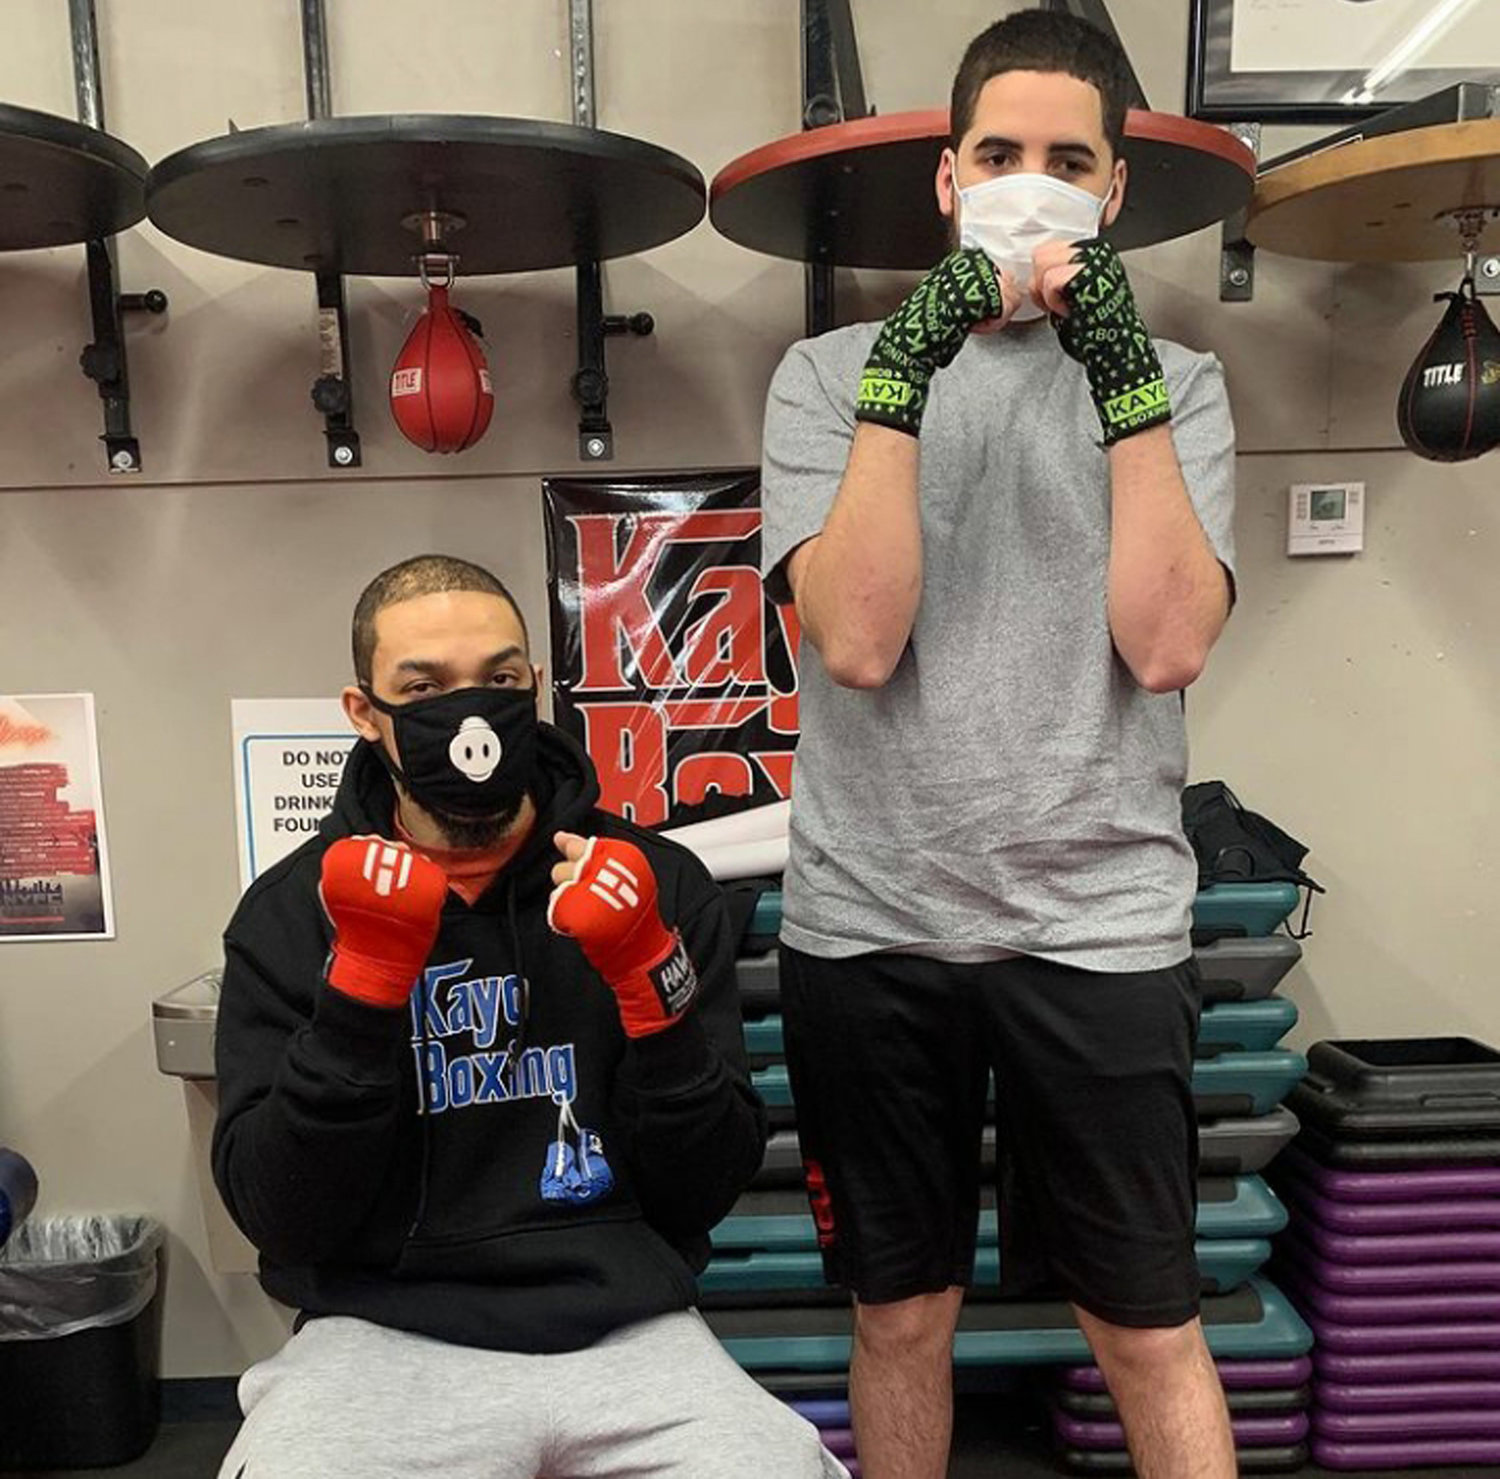 A viral video of Lorenzo Thomas, left, has inspired others to train at Kayo Boxing, including Donovan Maldonado, who joined the gym last month.